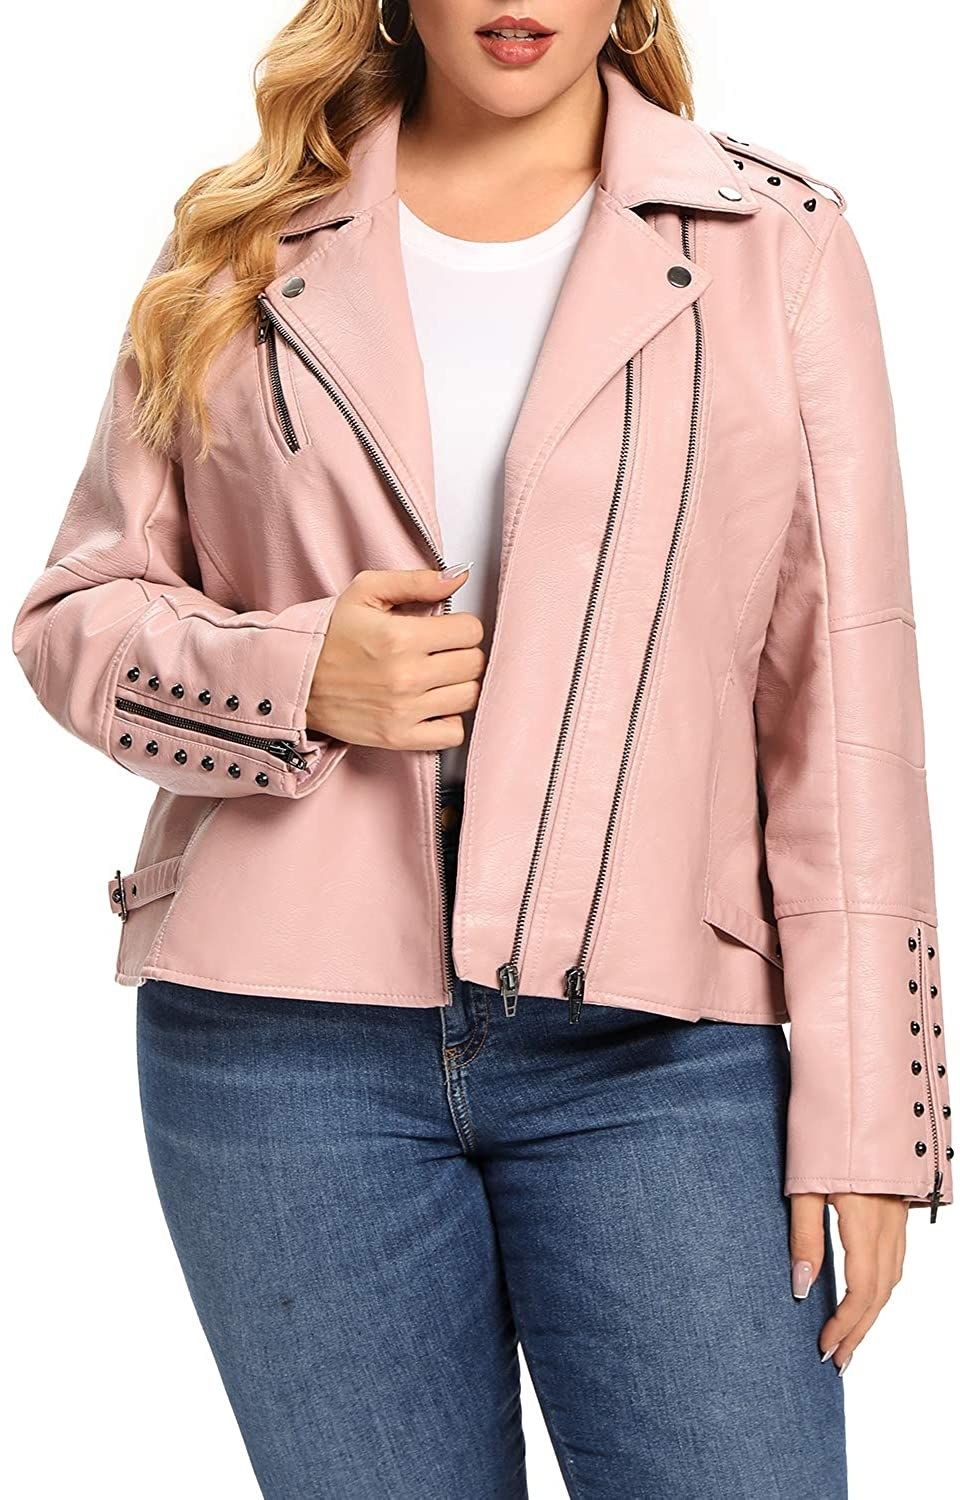 A model wearing the pink jacket with gunmetal hardware